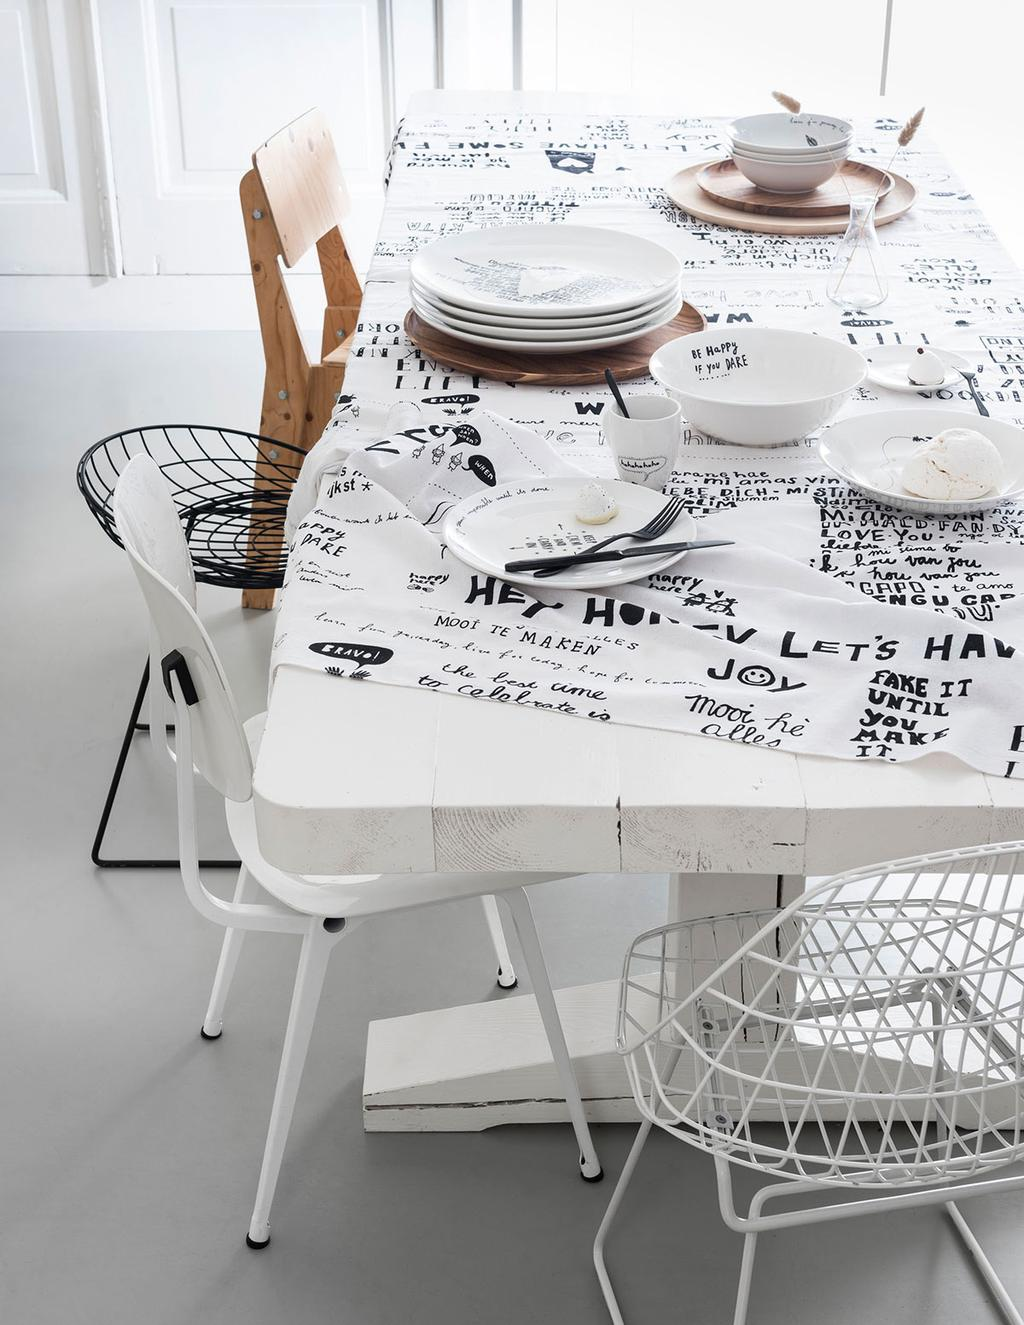 Gedekte tafel met vtwonen happy collection servies